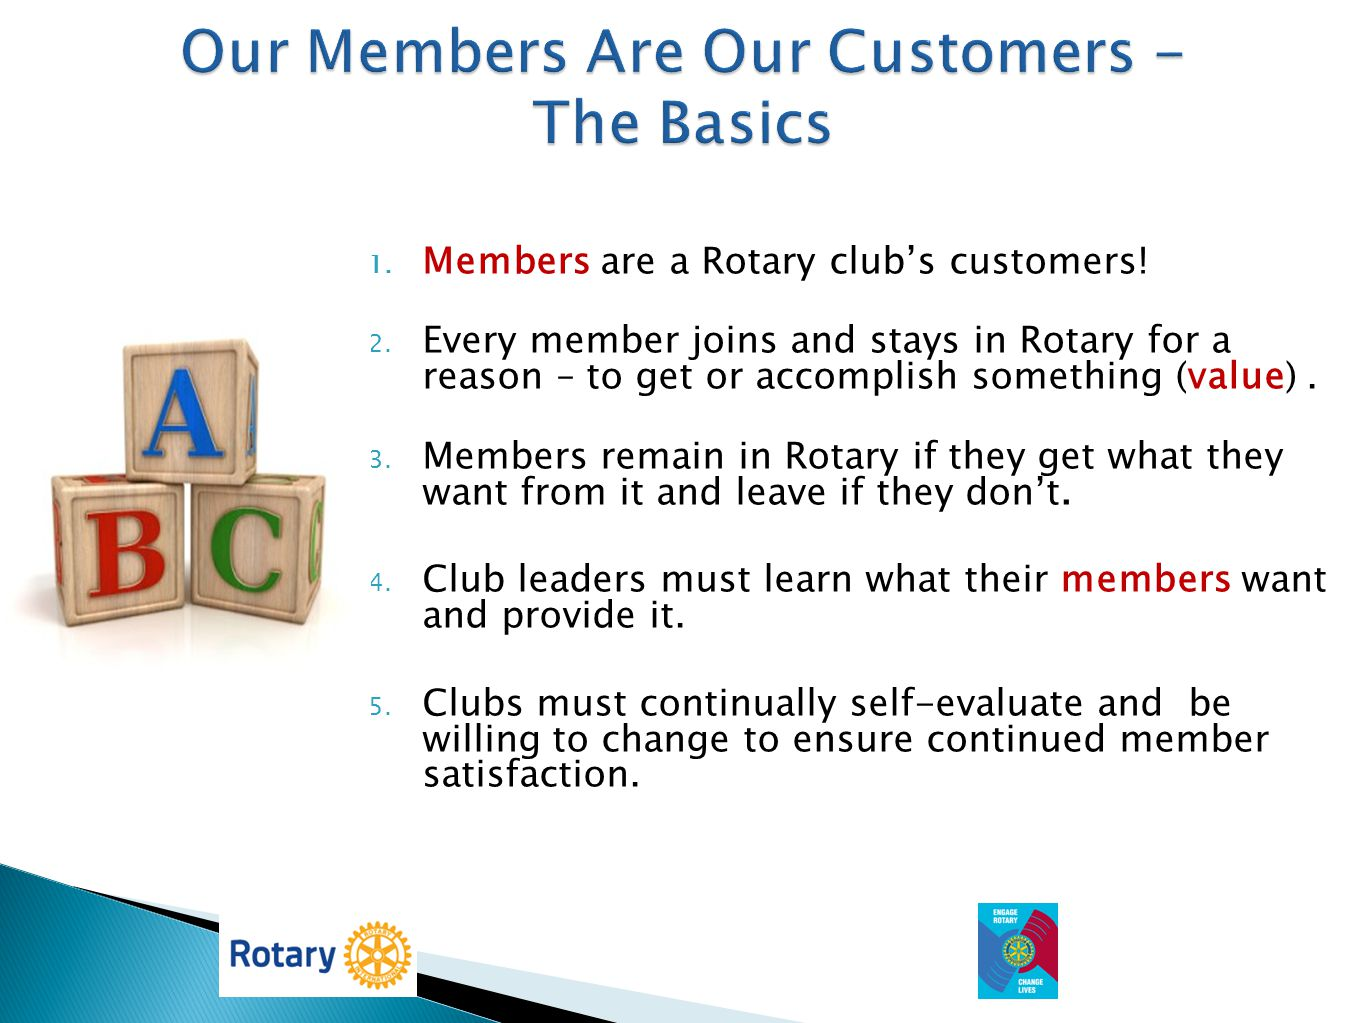 Our Members Are Our Customers - The Basics